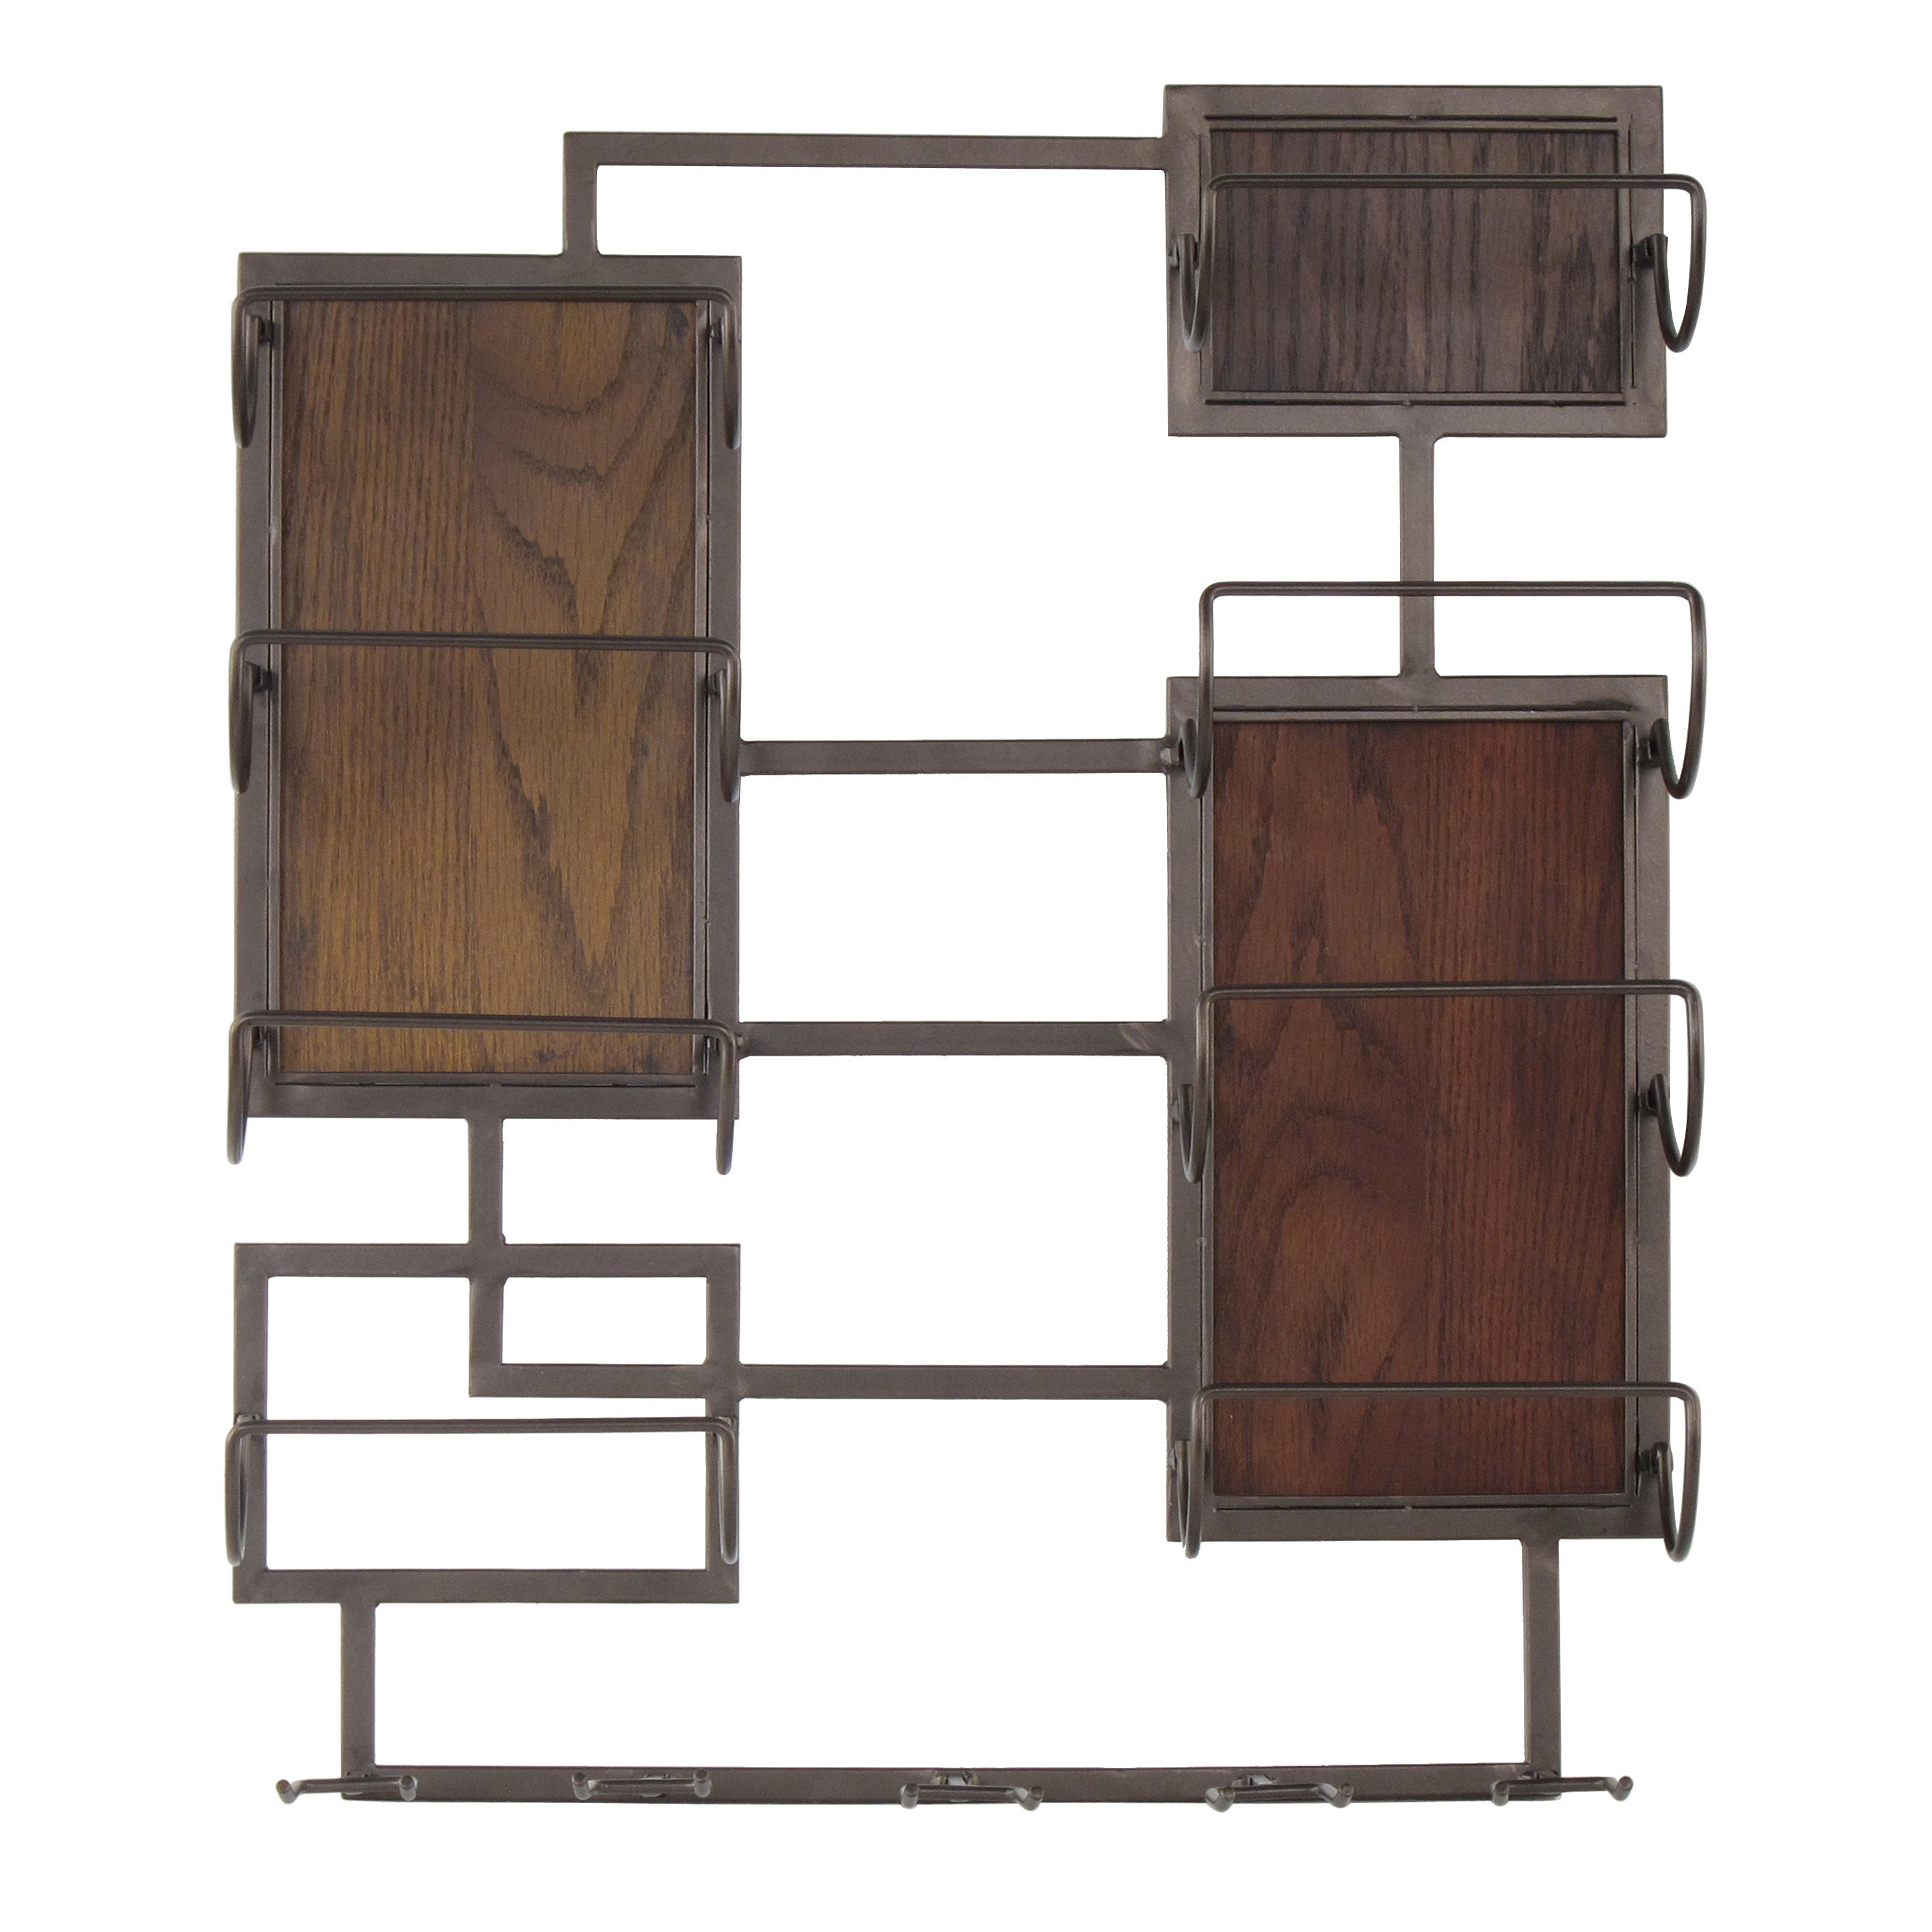 20X24 Metal And Wood 8 Bottle 5 Glass Wall Mount Wine Storage